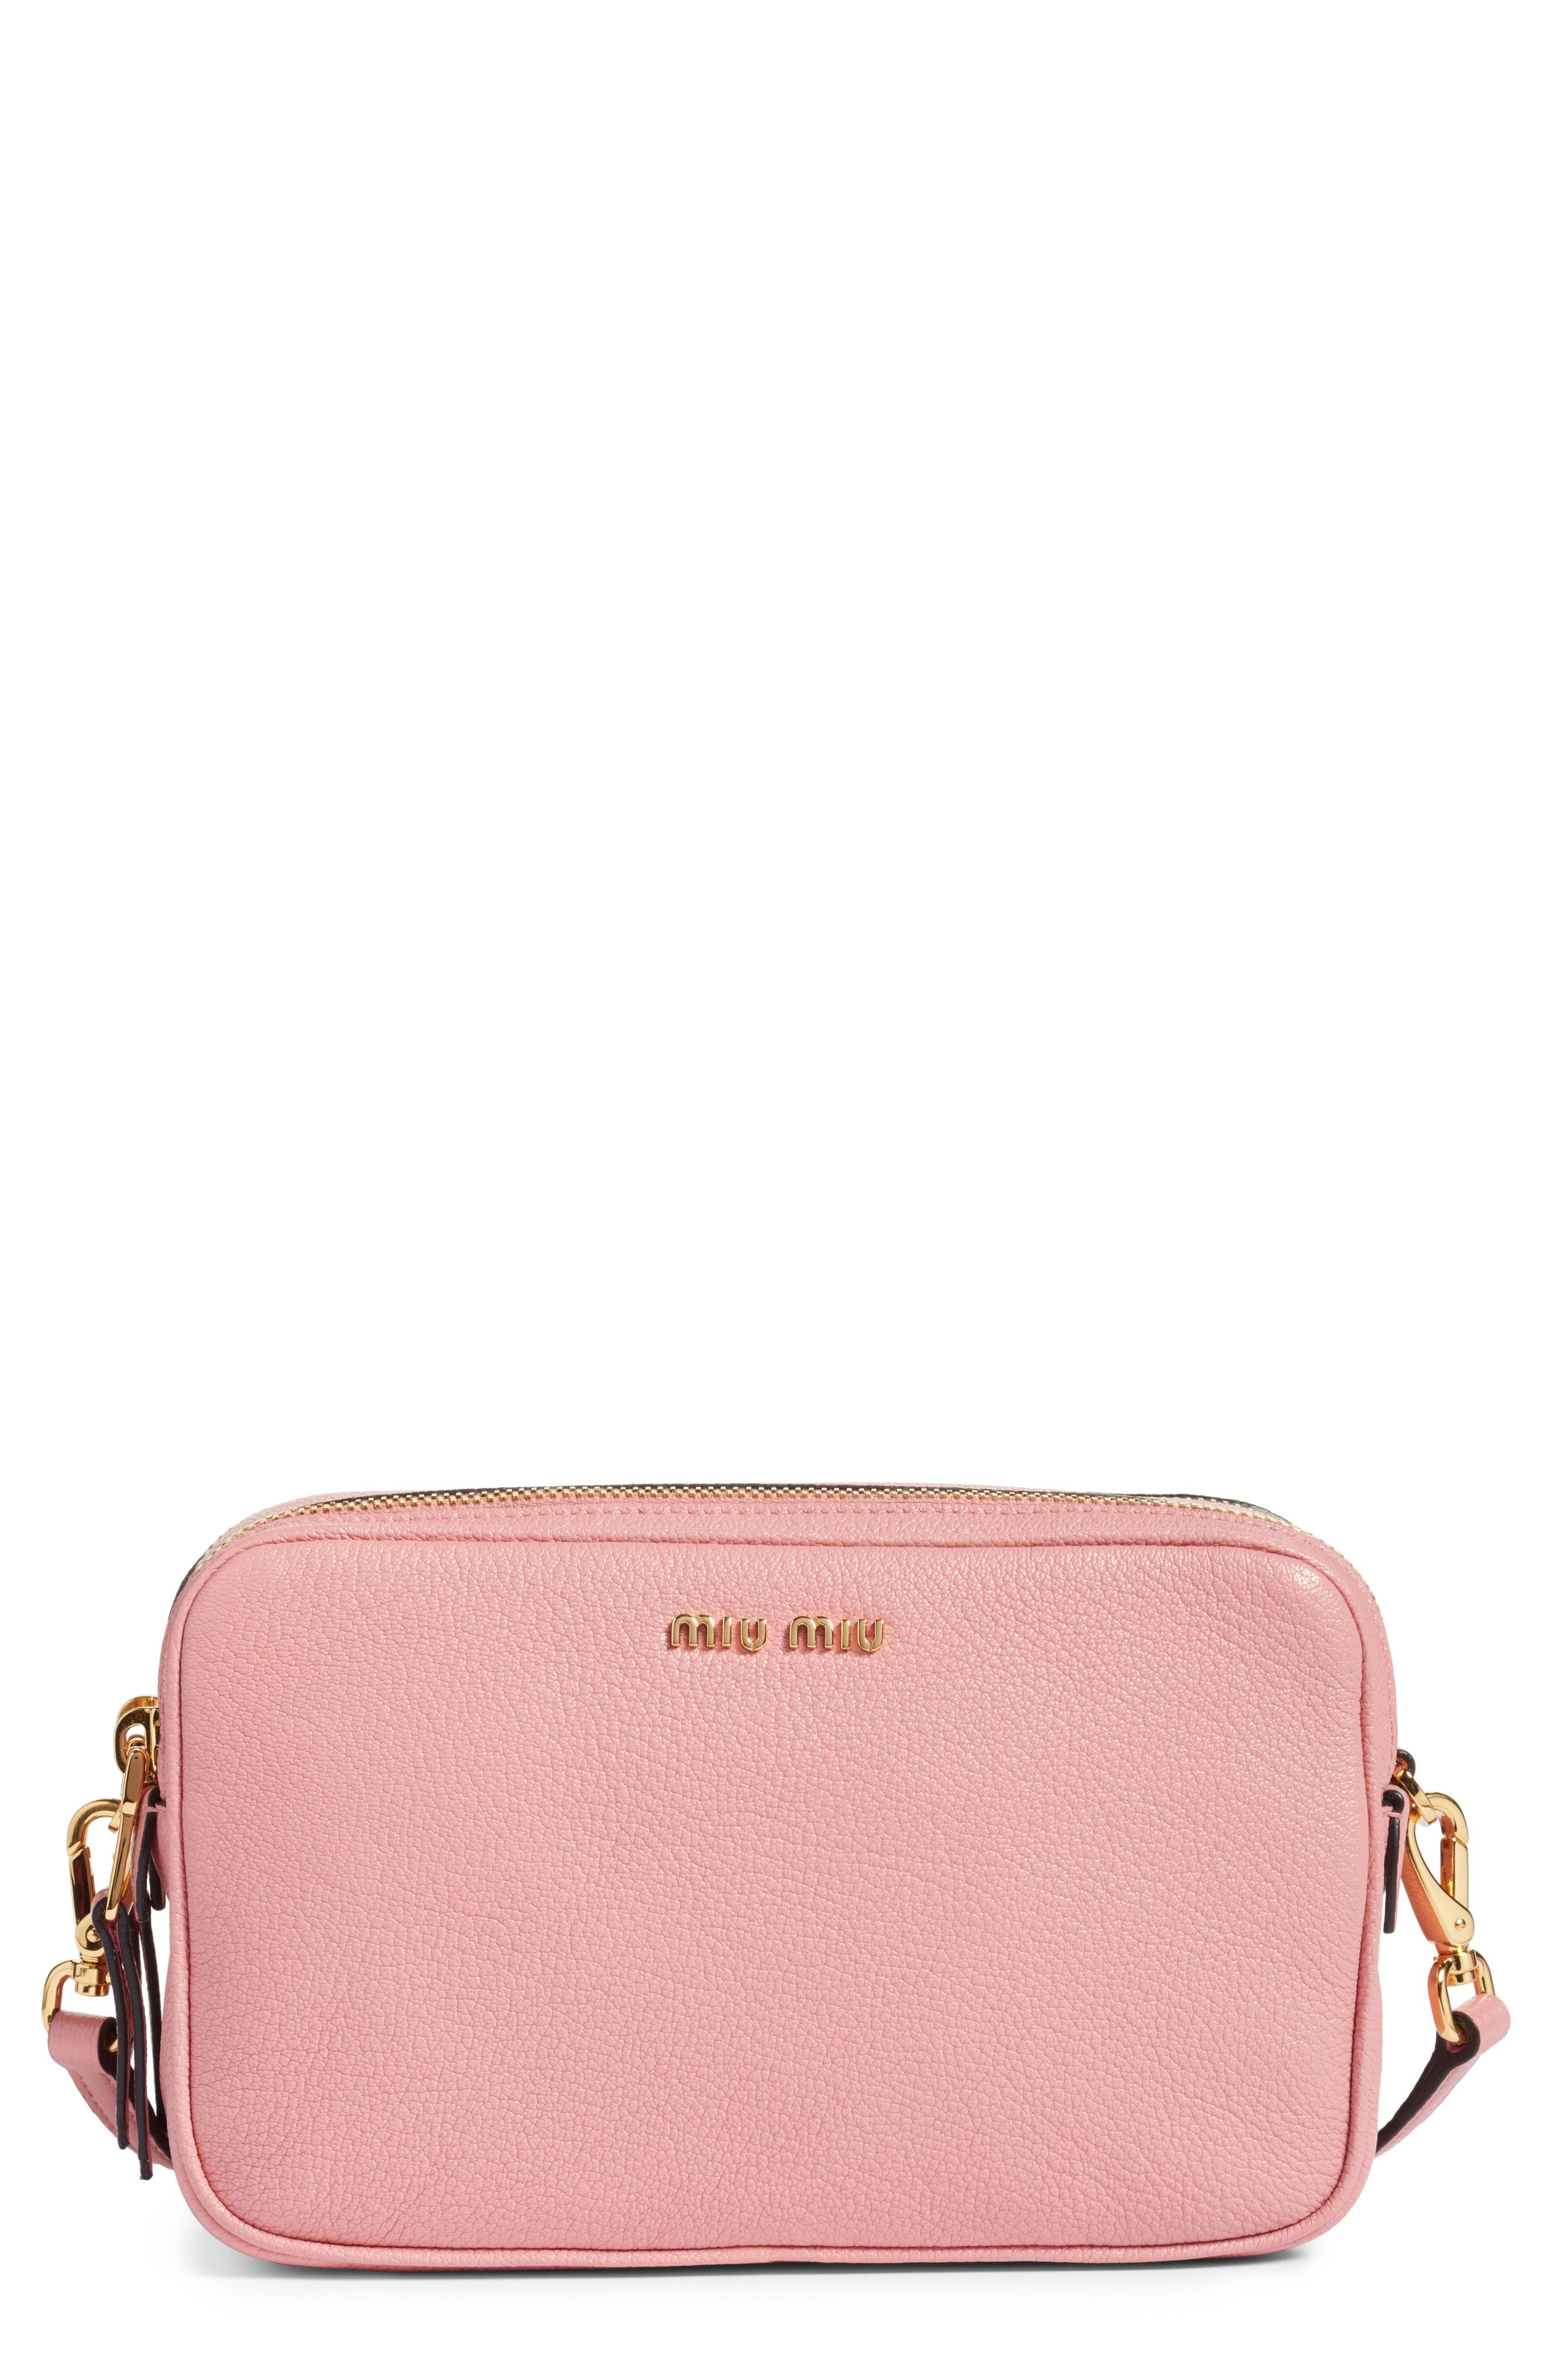 Miu Miu Madras Goatskin Leather Crossbody Bag